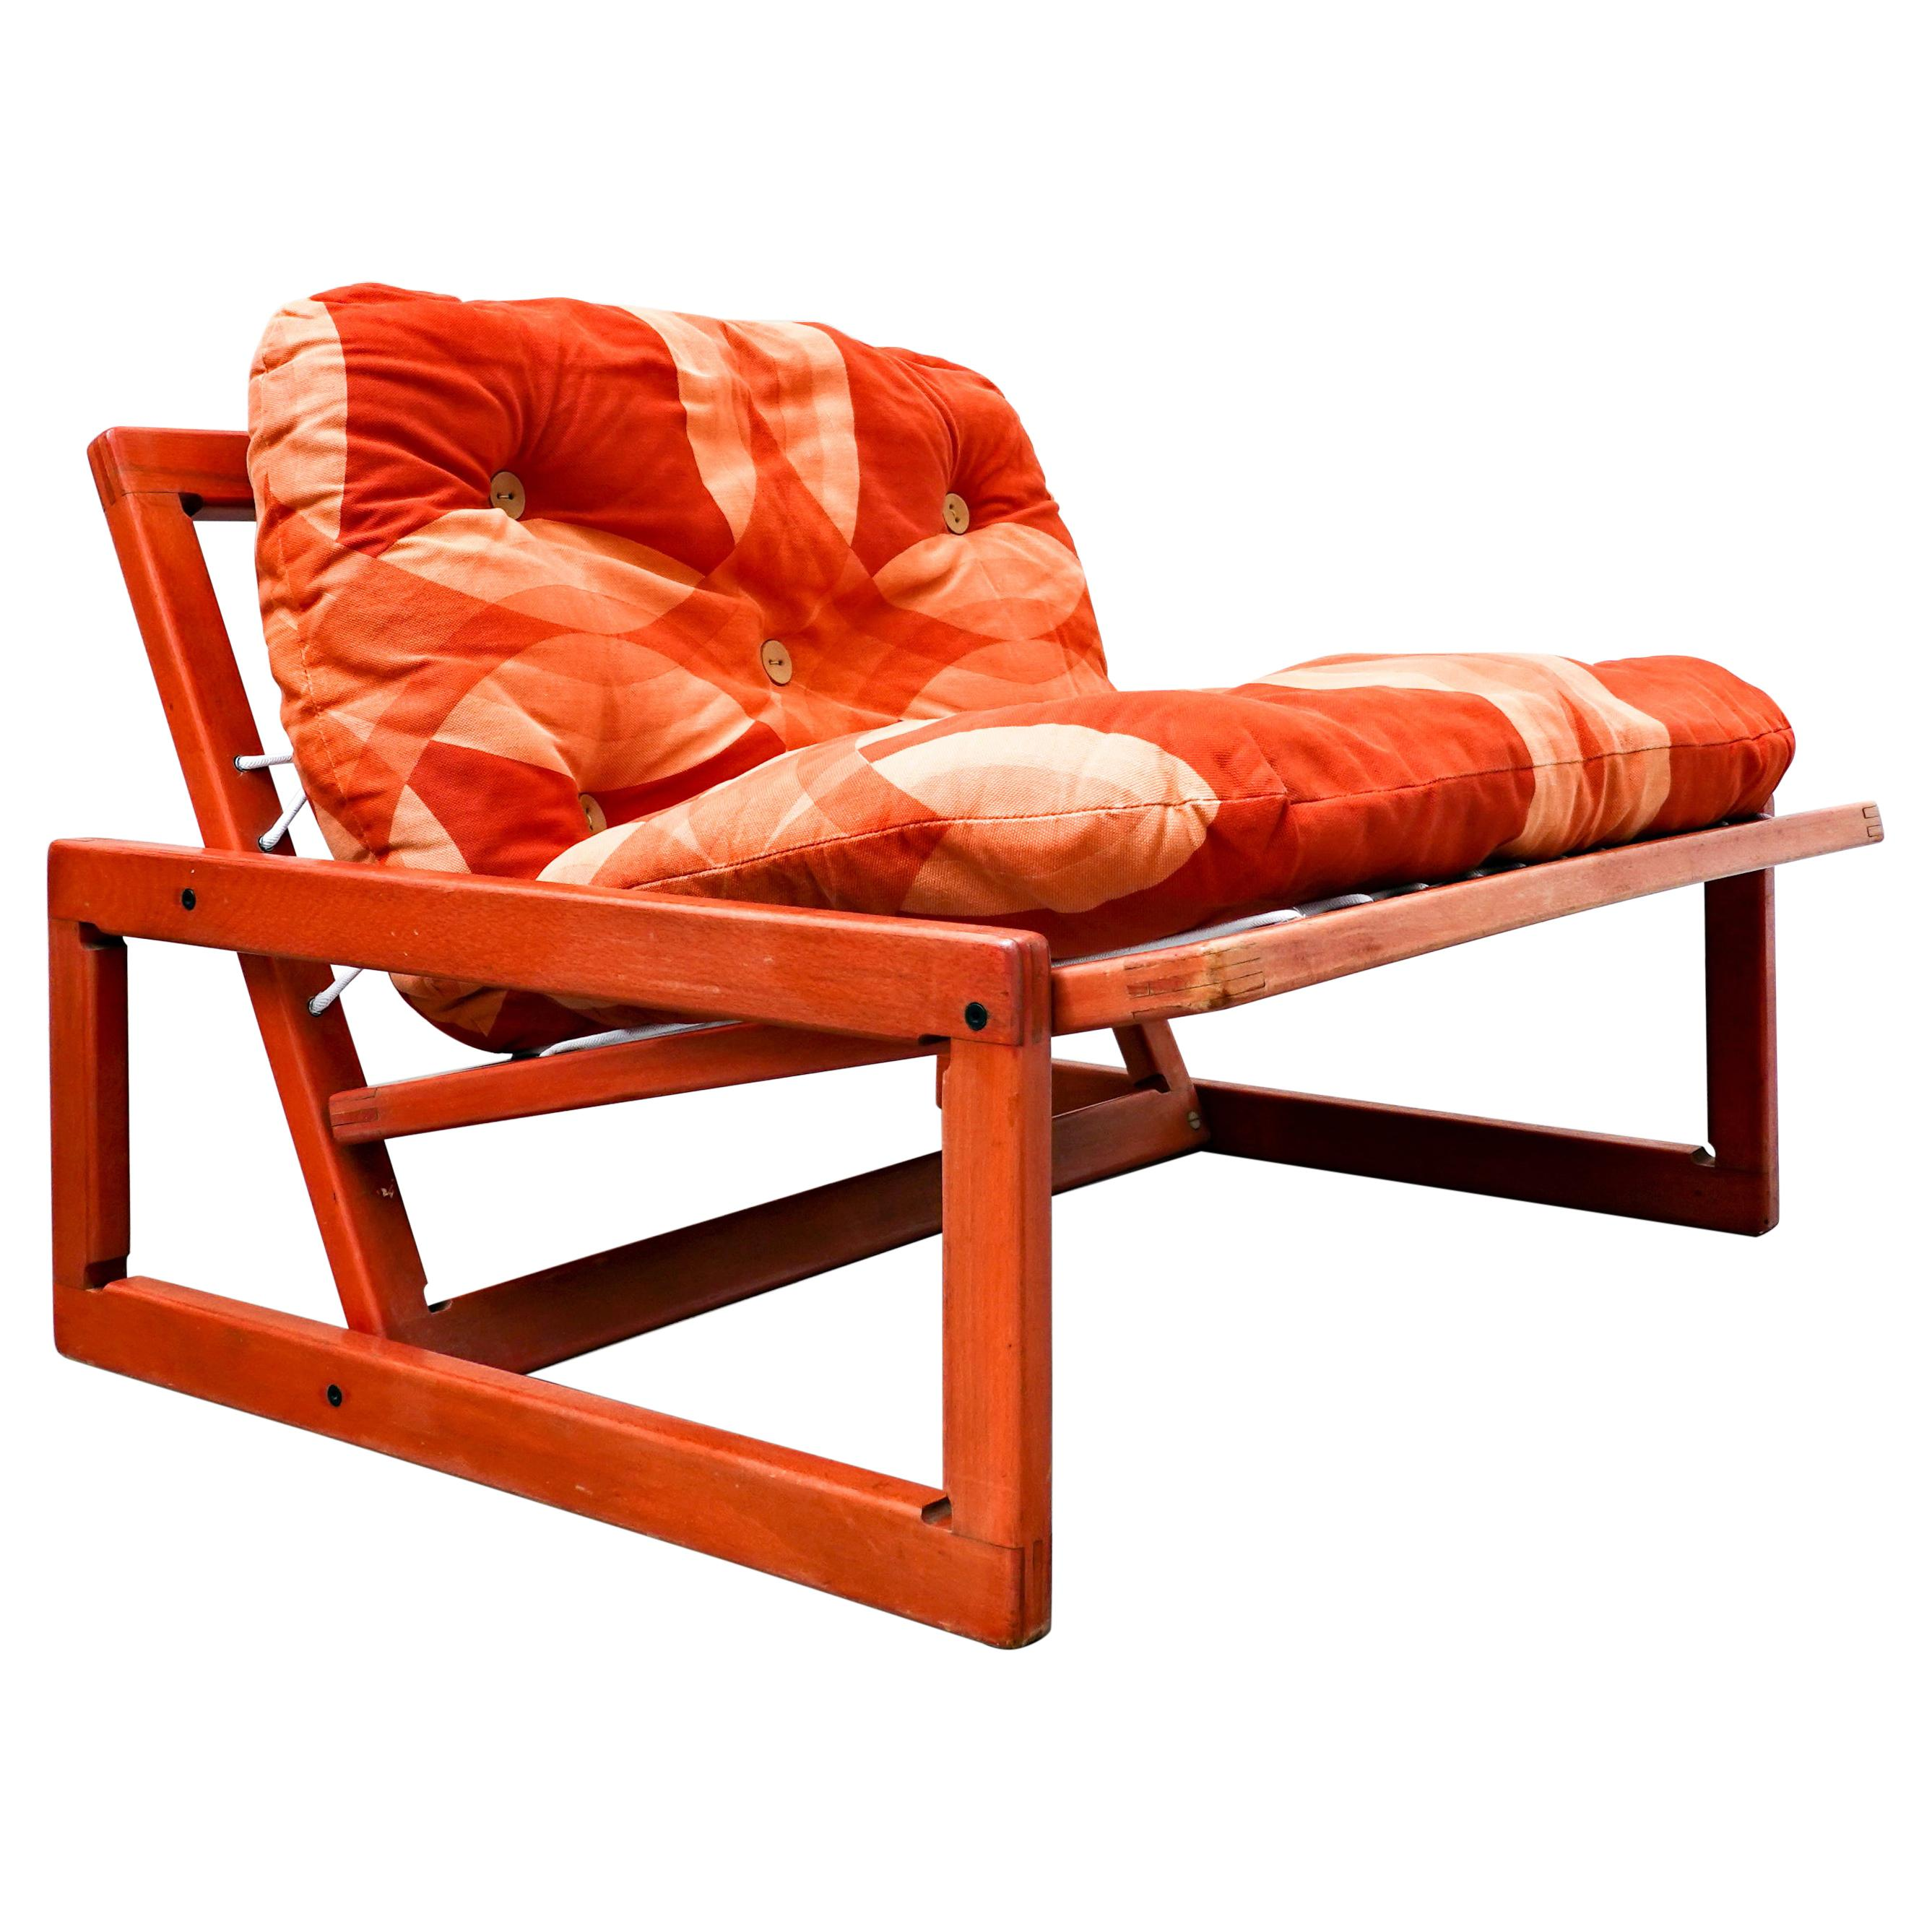 Mid-Century Lounge Chair 'Carlotta' by Tobia & Afra Scarpa for Cassina, 1960s